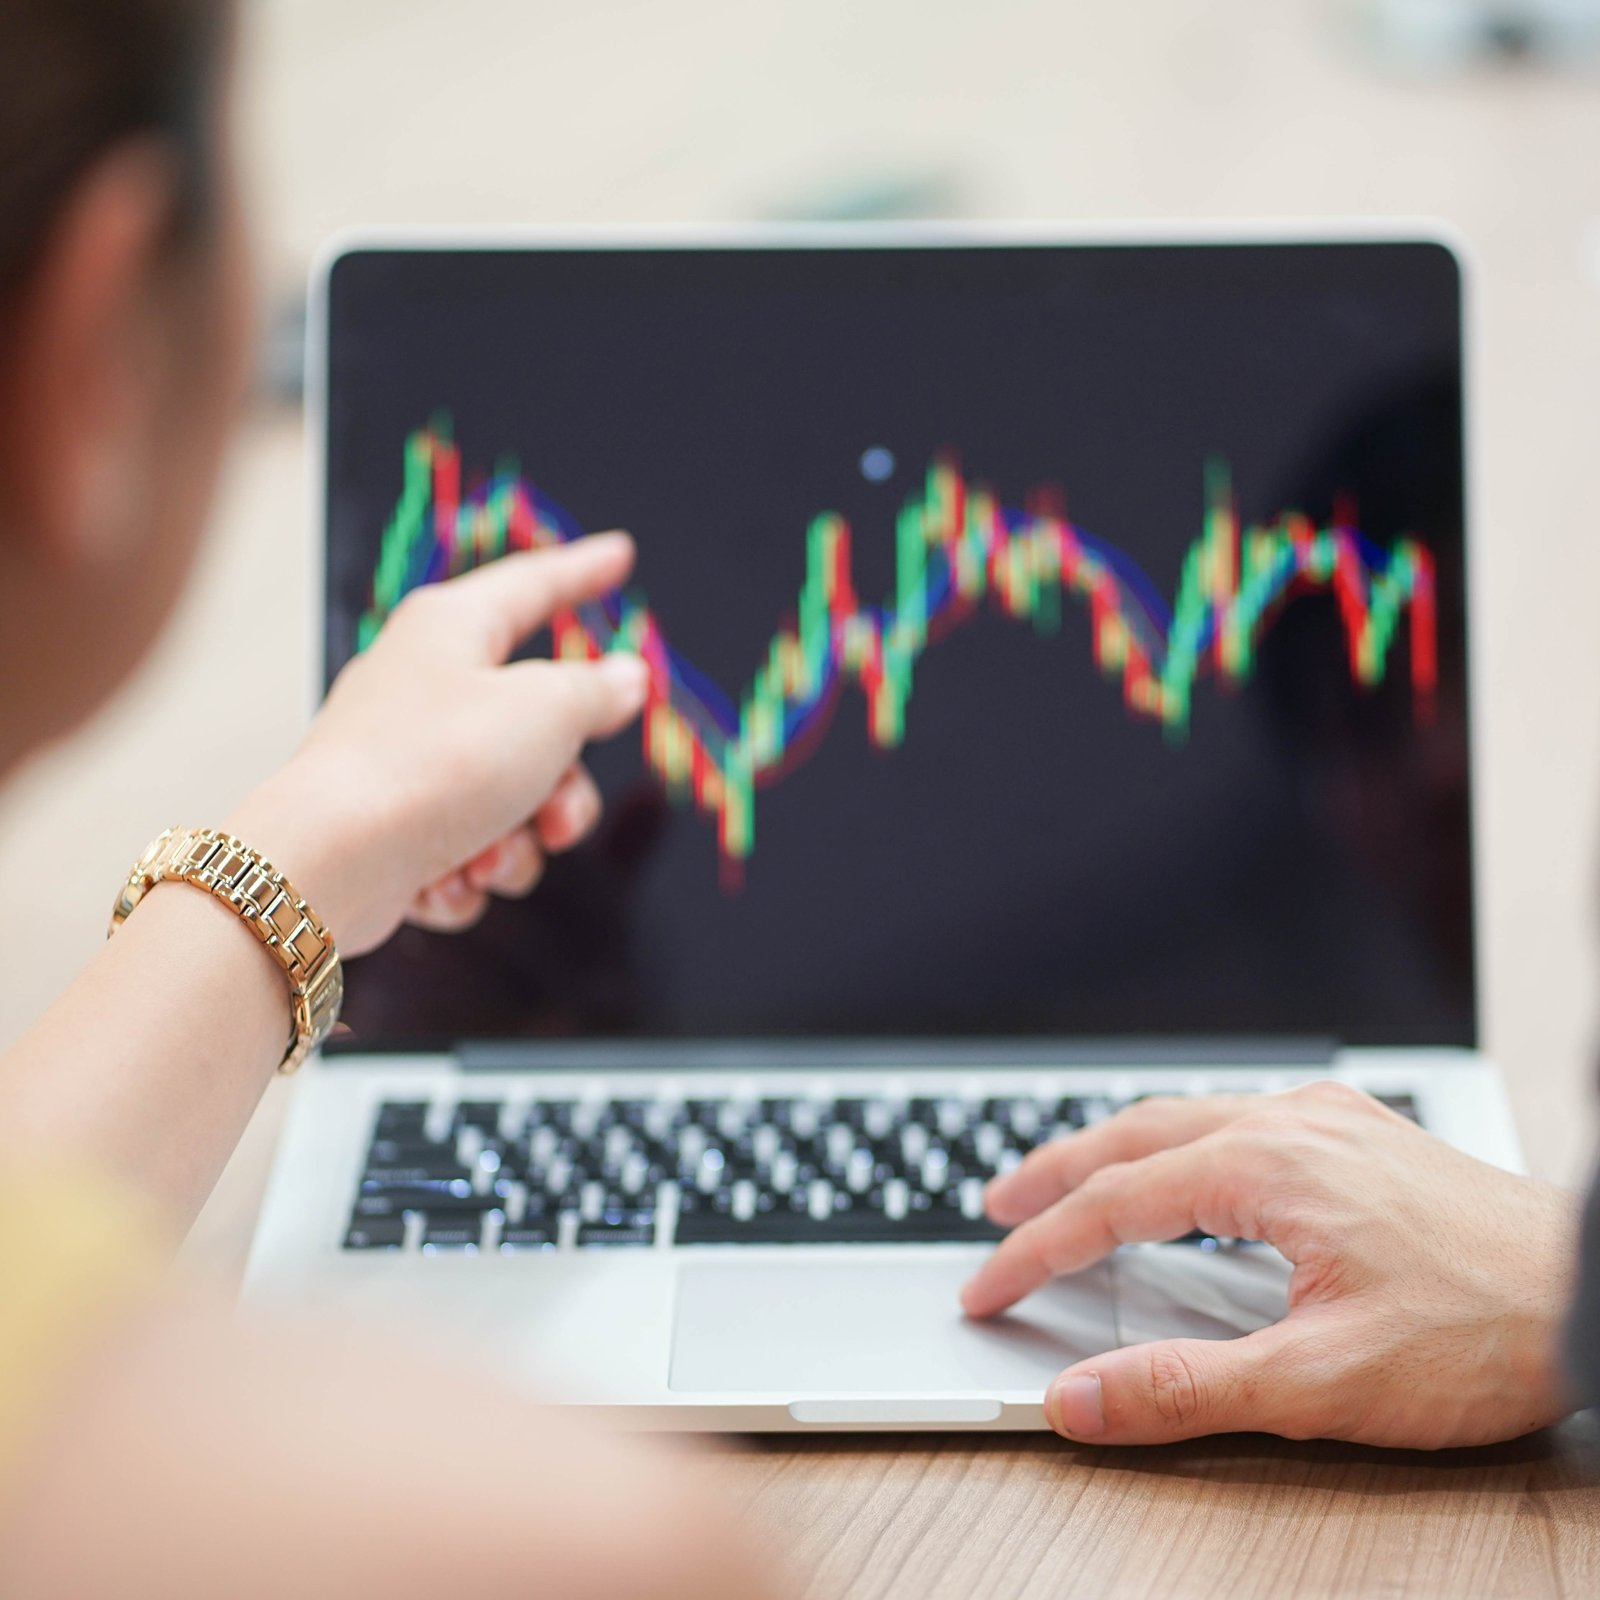 Markets Update: Last Week's Price Trends Move in the Opposite Direction